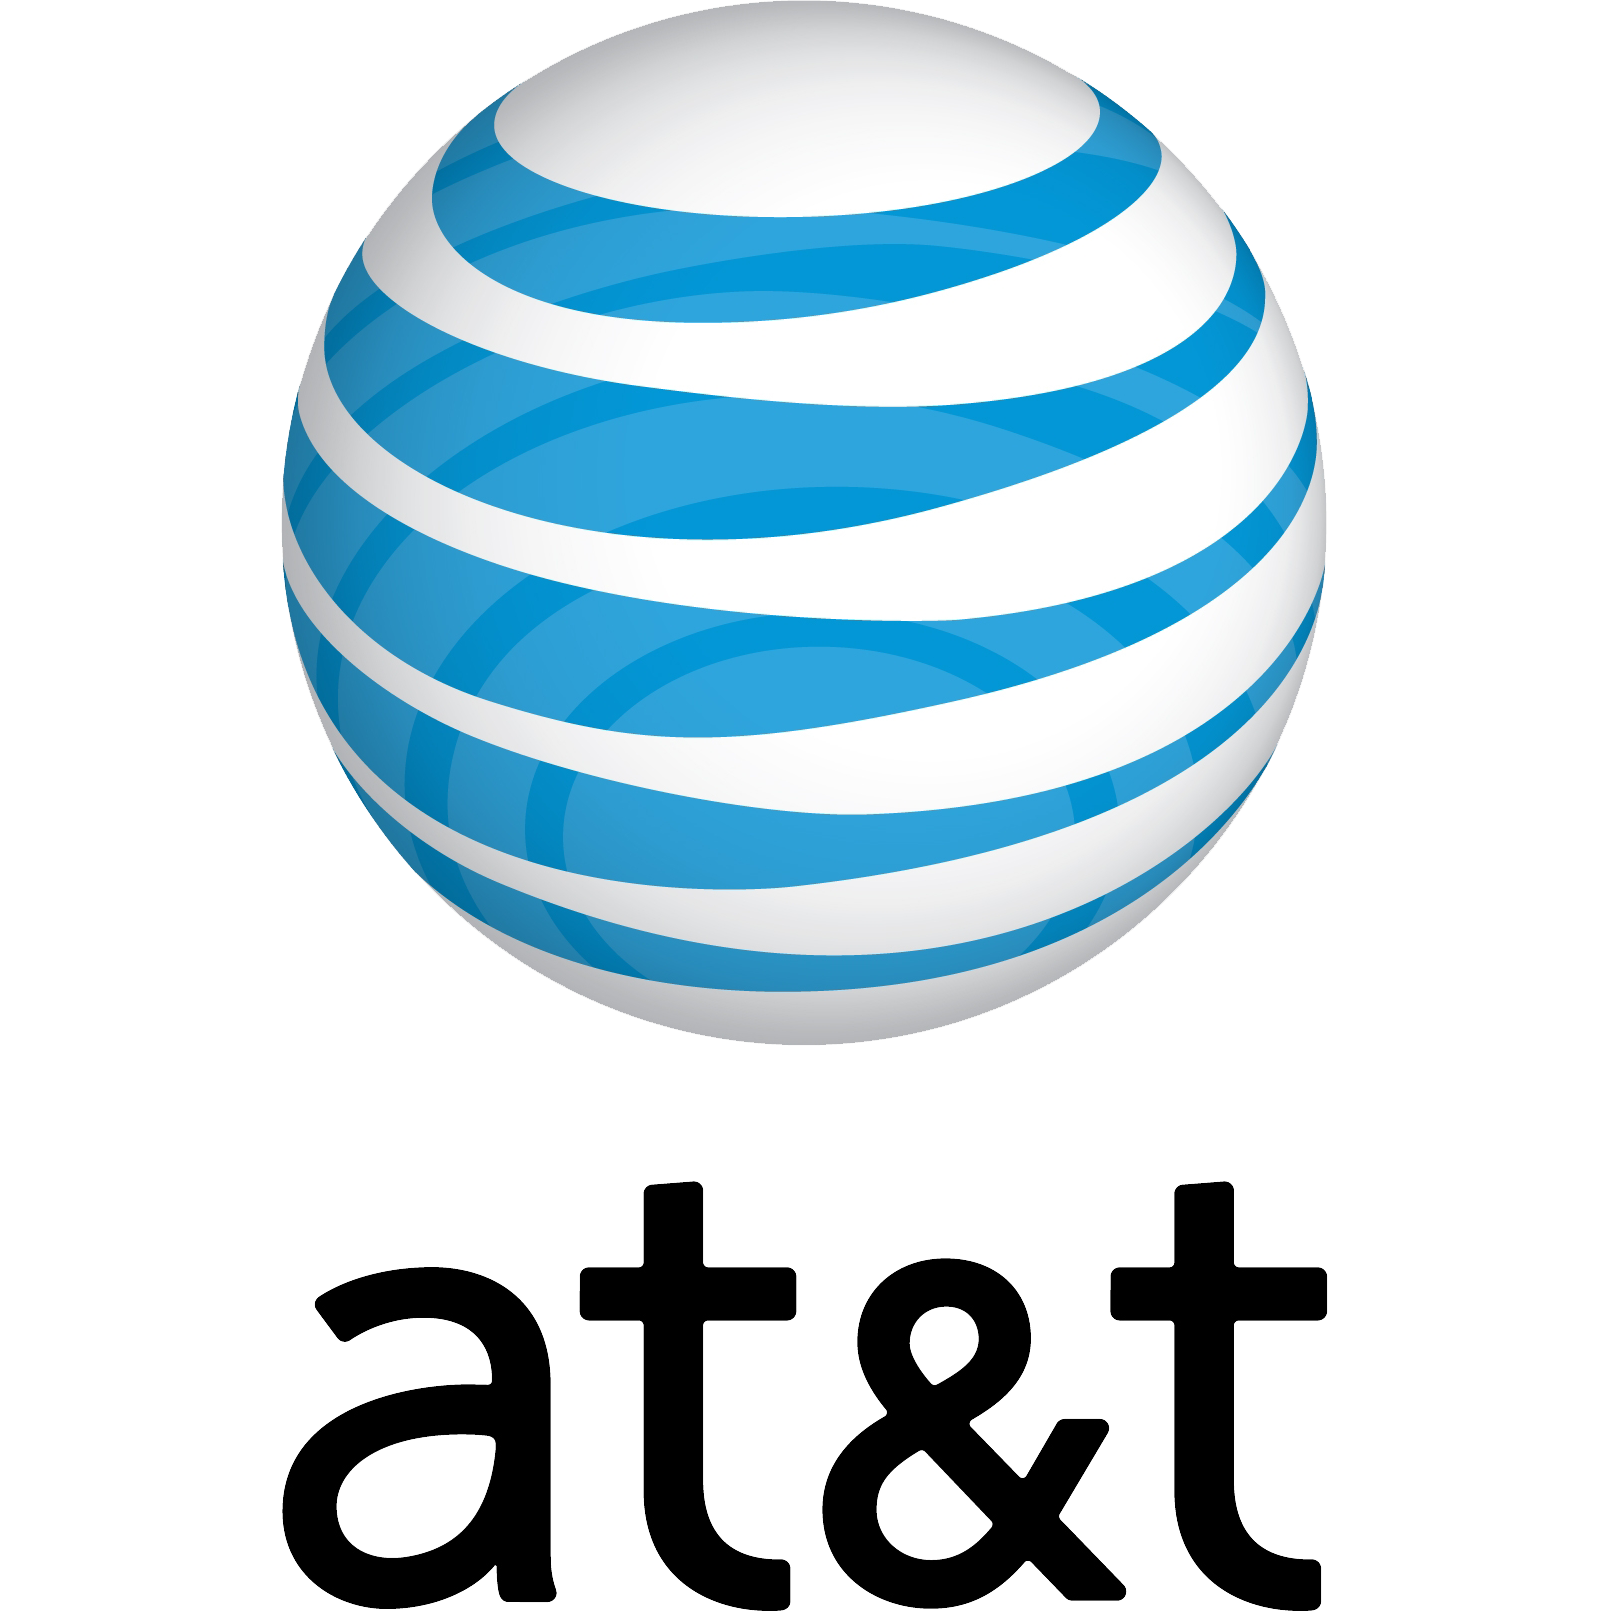 AT&T Launches True 4G LTE, Available in Only Five Cities